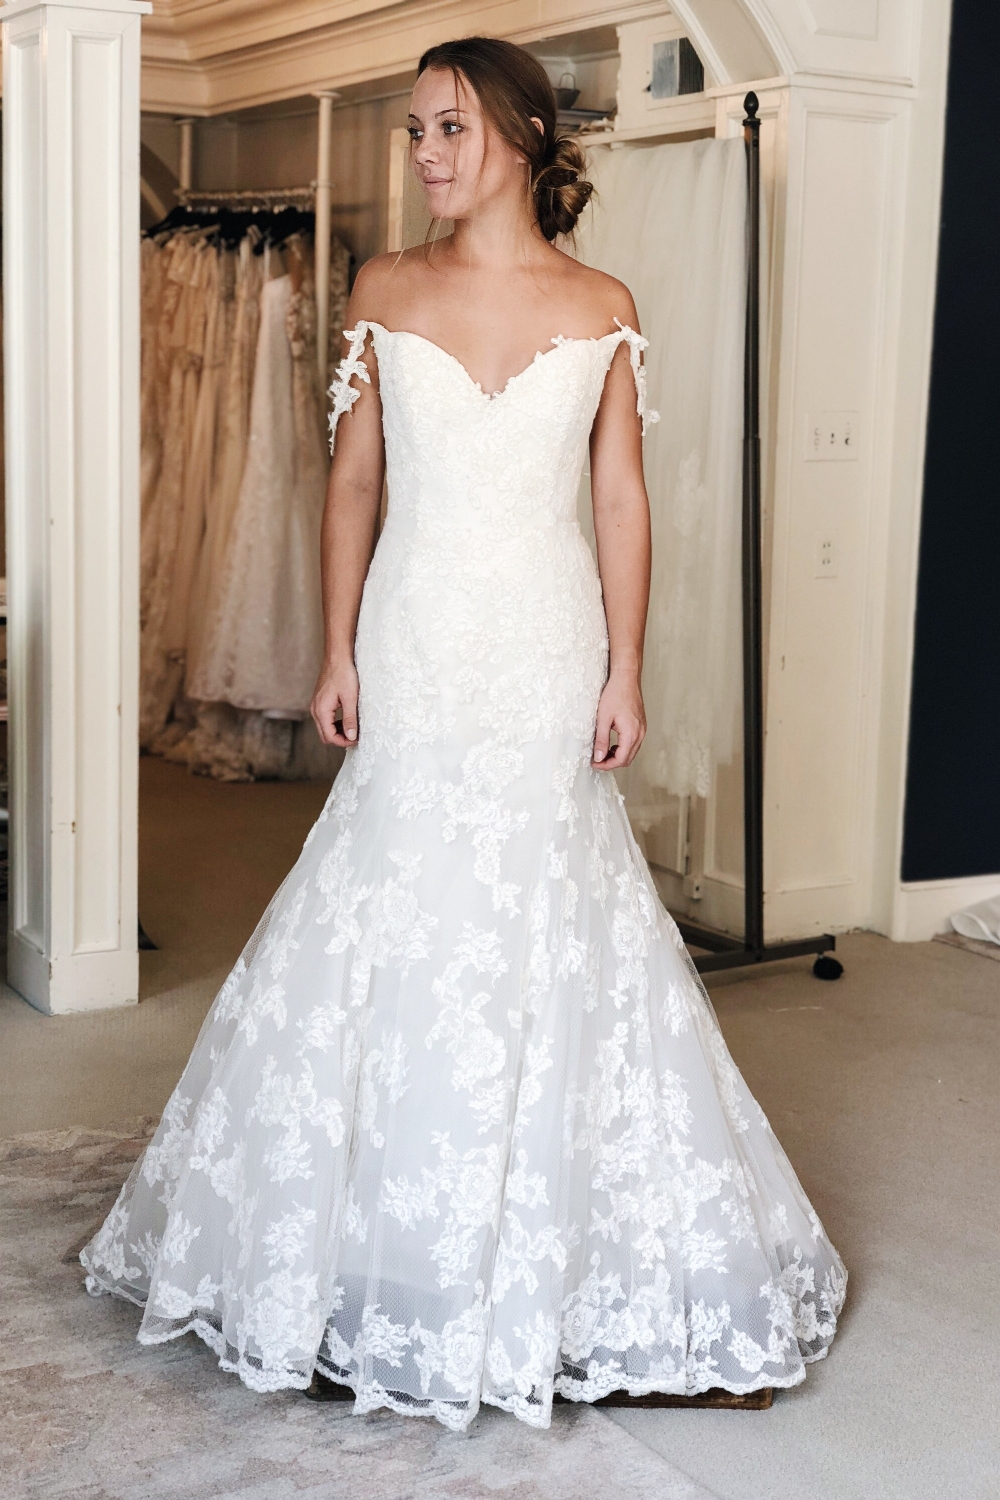 Enzoani diana - was: $2575our price: $1802Sale price: $1531